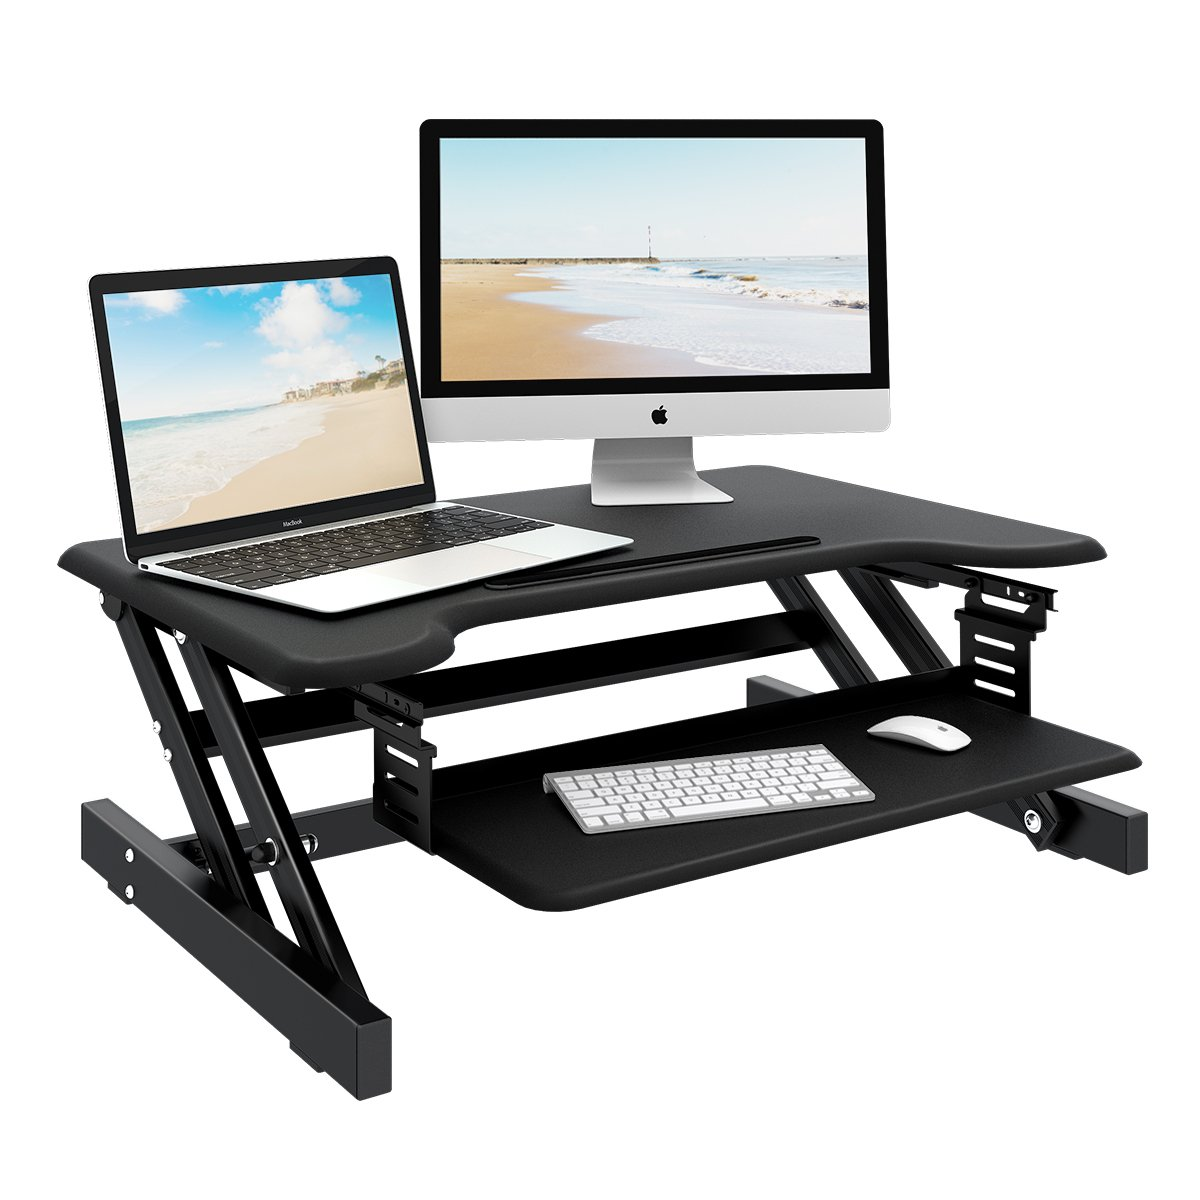 Standing Desk - DEVAISE Height Adjustable Desk Converter with Ipad Slot- Size 32in x 21in Instantly Convert any Desk to a Sit / Stand up Desk (Black) by DEVAISE